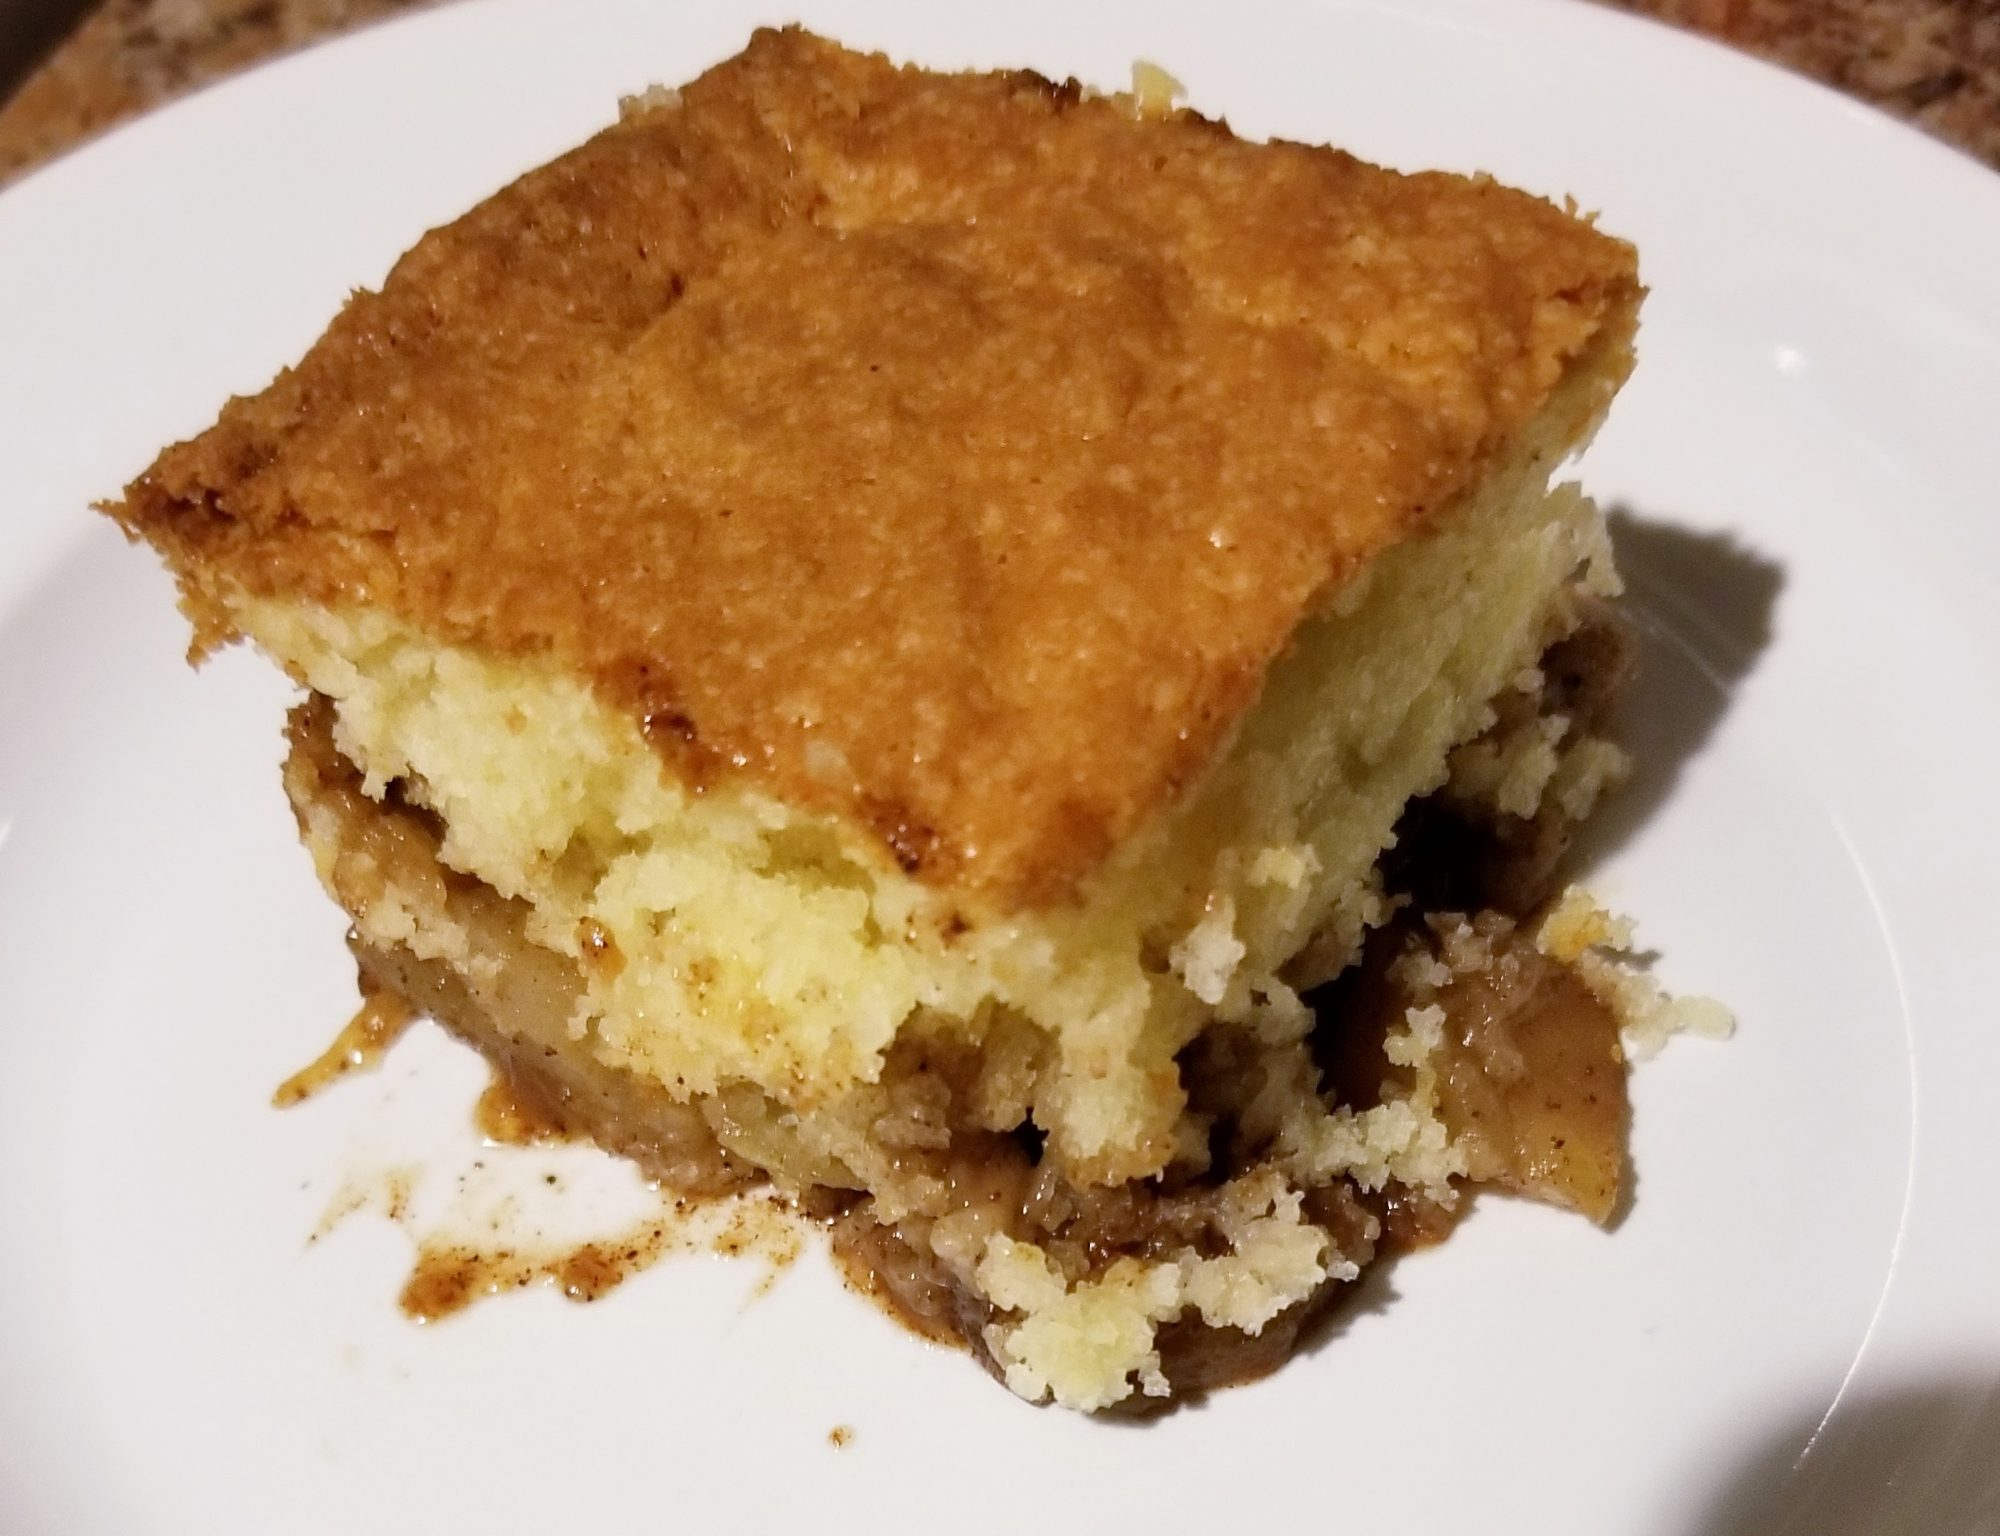 Piece of apple cobbler on white plate